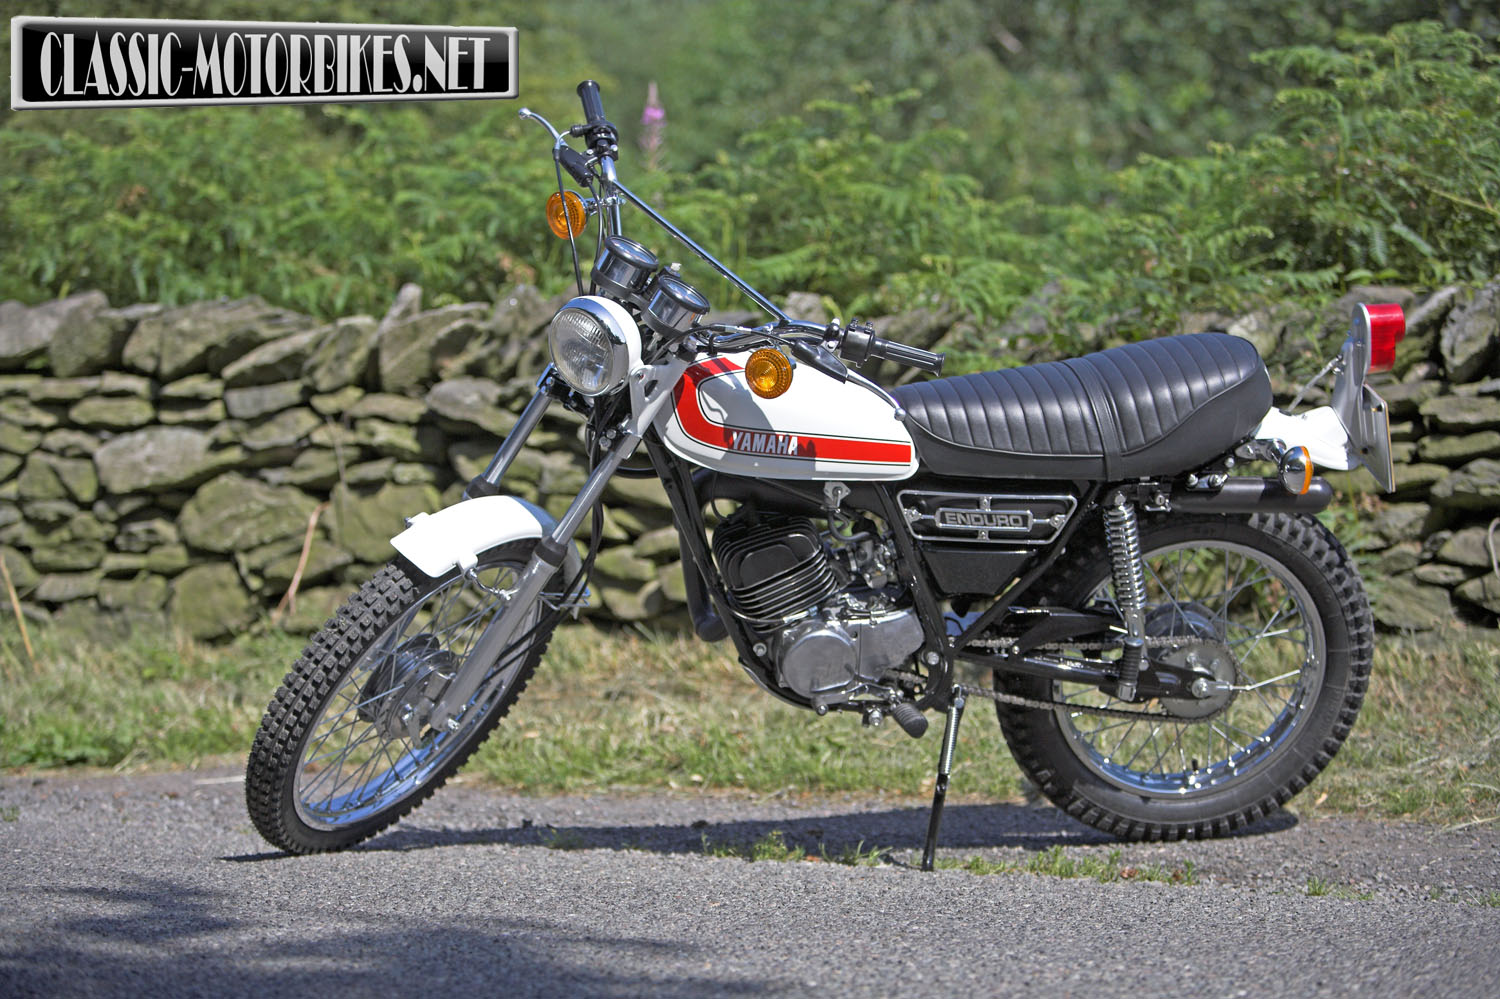 Yamaha DT 175 1974 images #90024